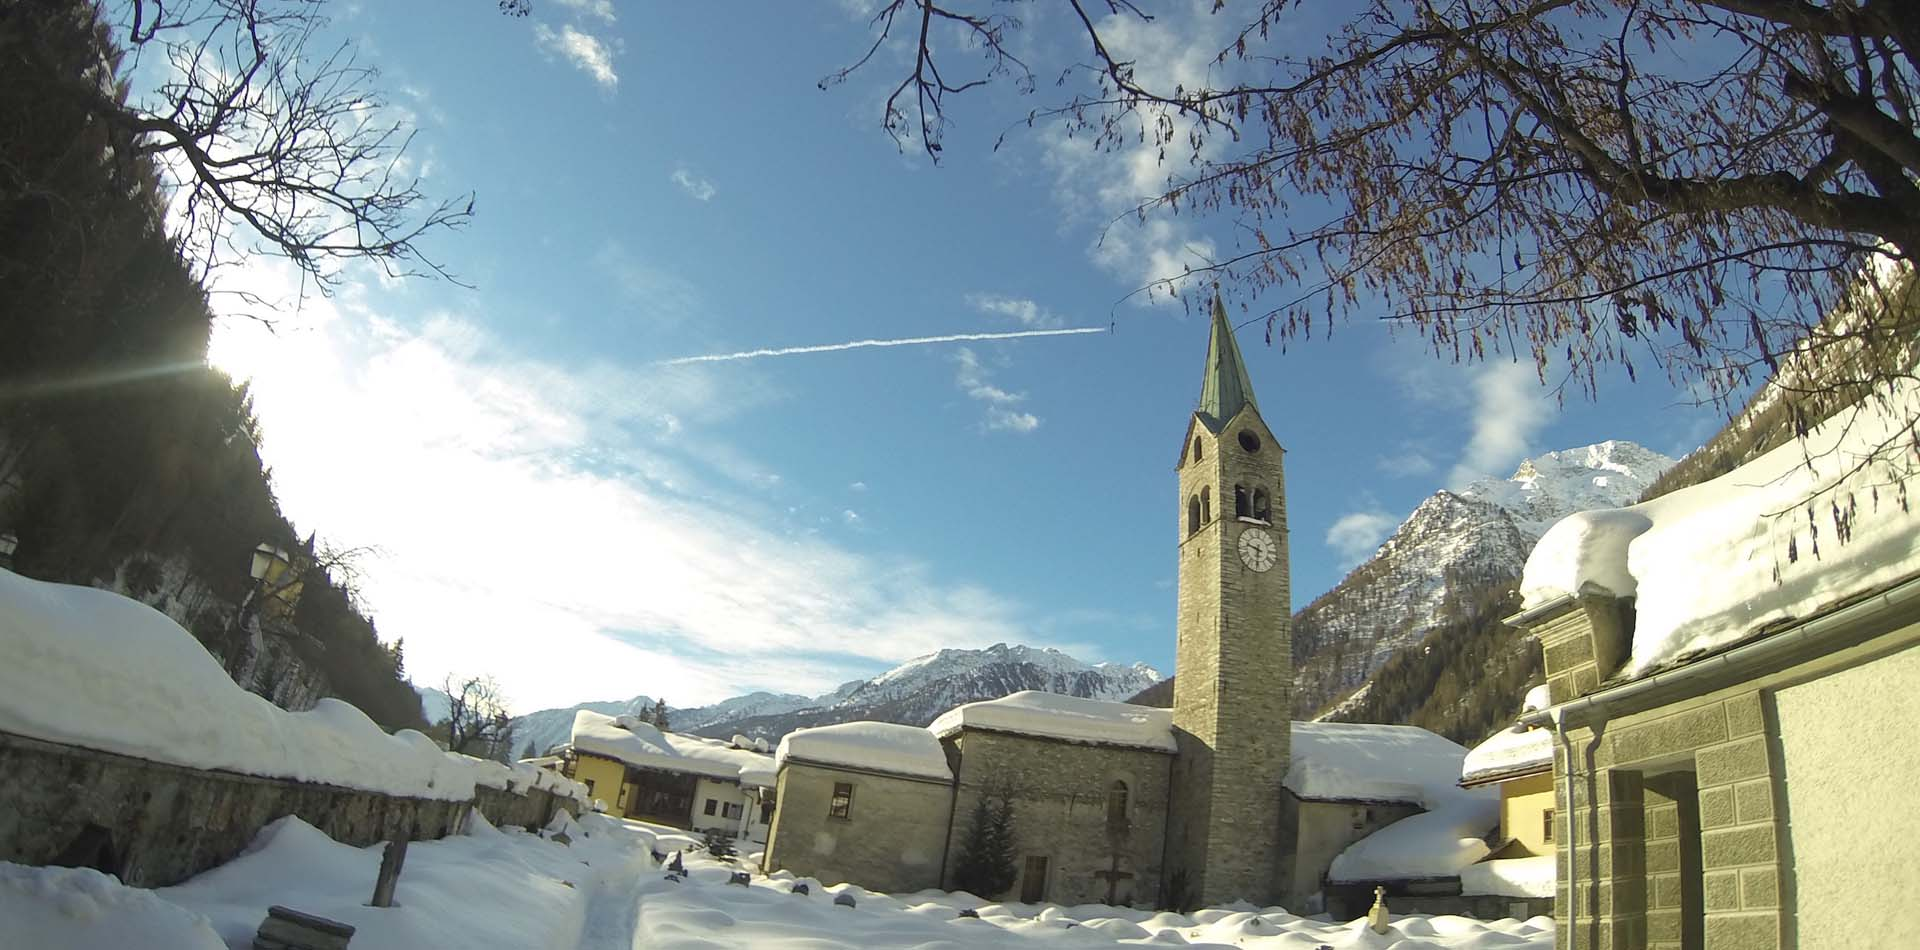 Gressoney church in the village